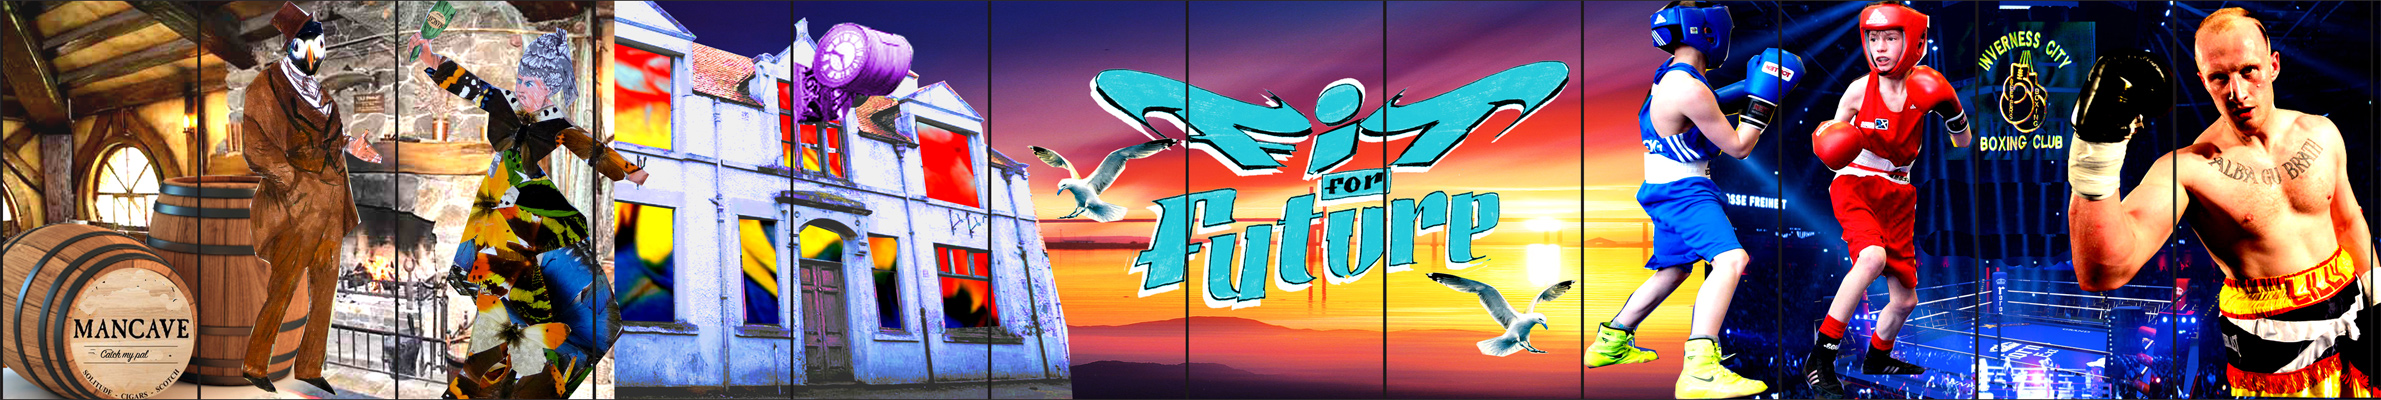 fitforfuturePROJECT-DESIGN